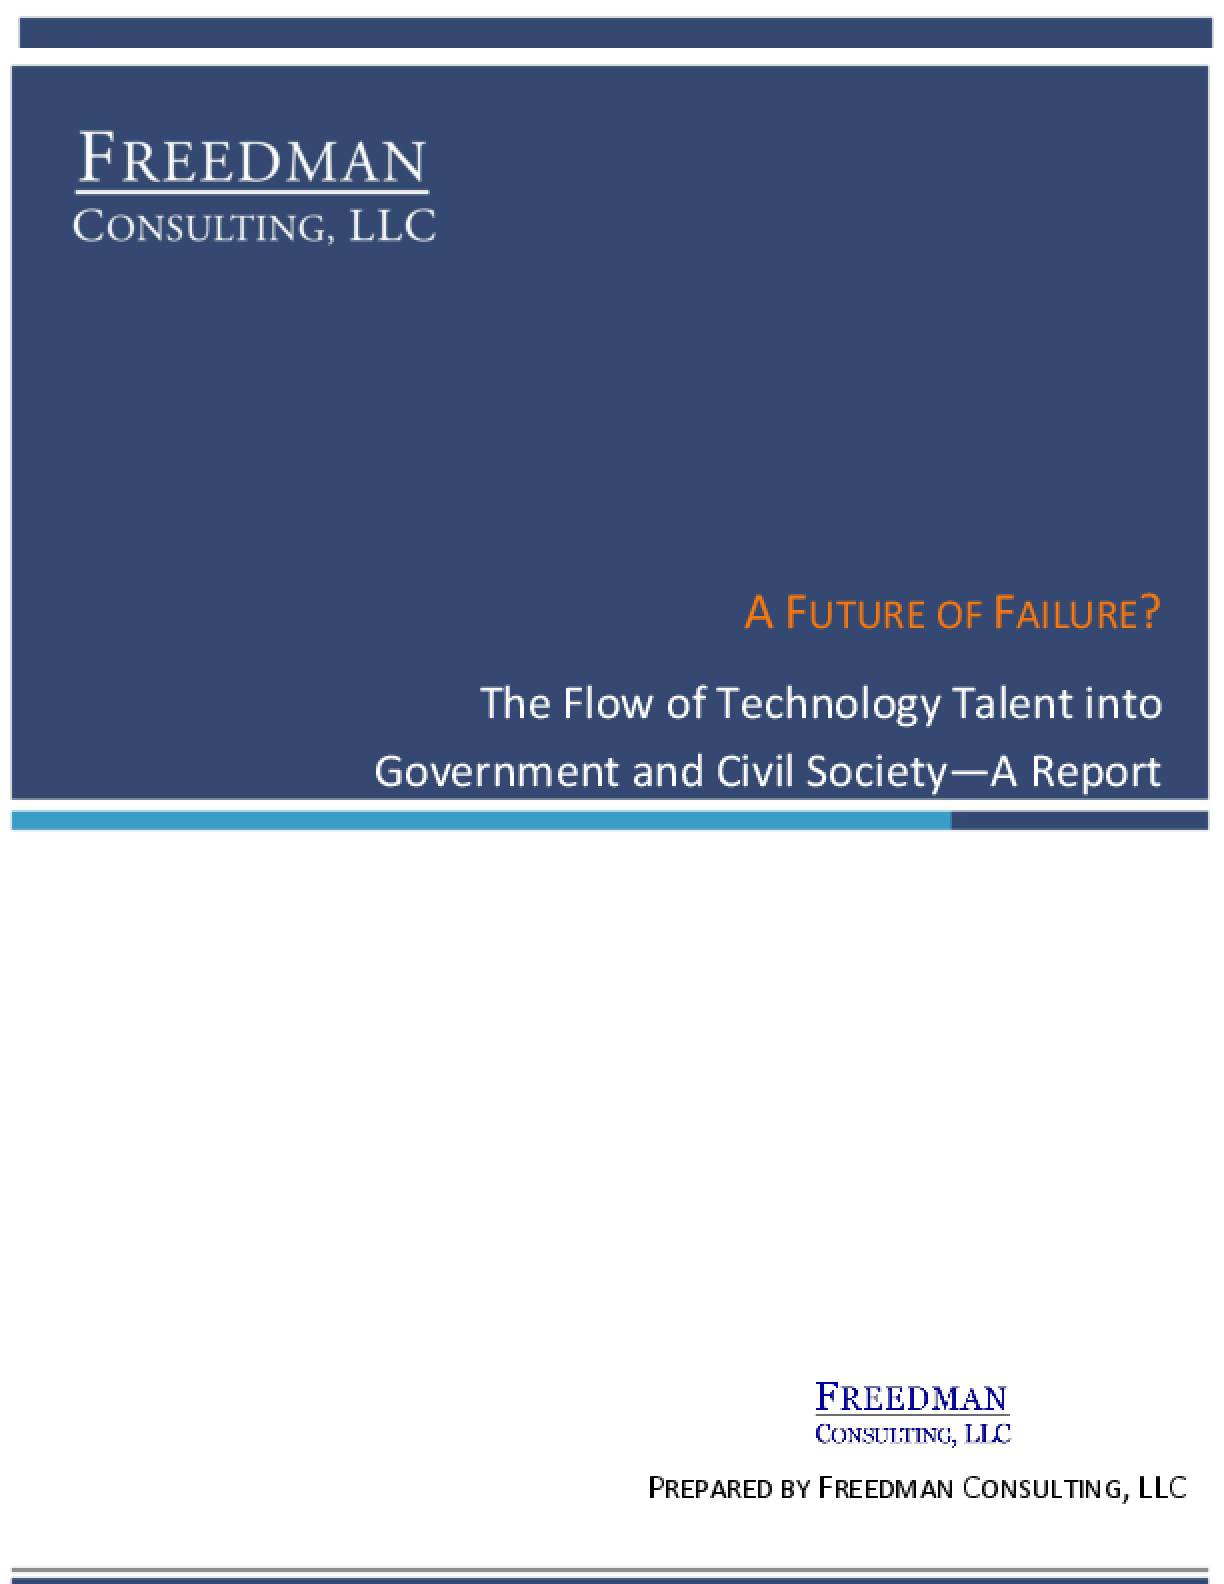 A Future of Failure? The Flow of Technology Talent into Government and Civil Society